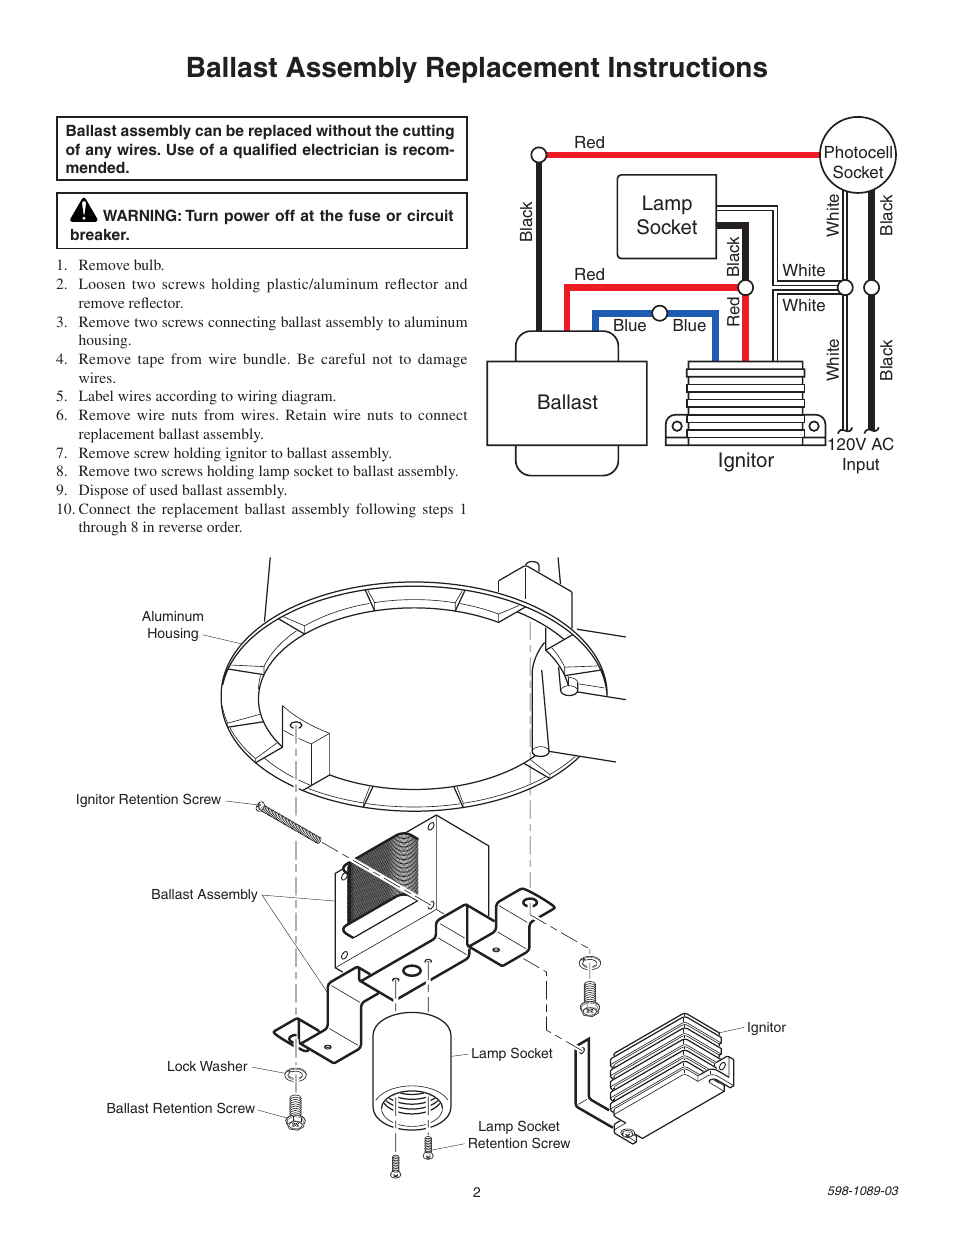 heath zenith high pressure sodium dusk to dawn security light sl 5660 page2 ballast assembly replacement instructions, lamp socket, ballast wiring diagram for dusk to dawn light at aneh.co